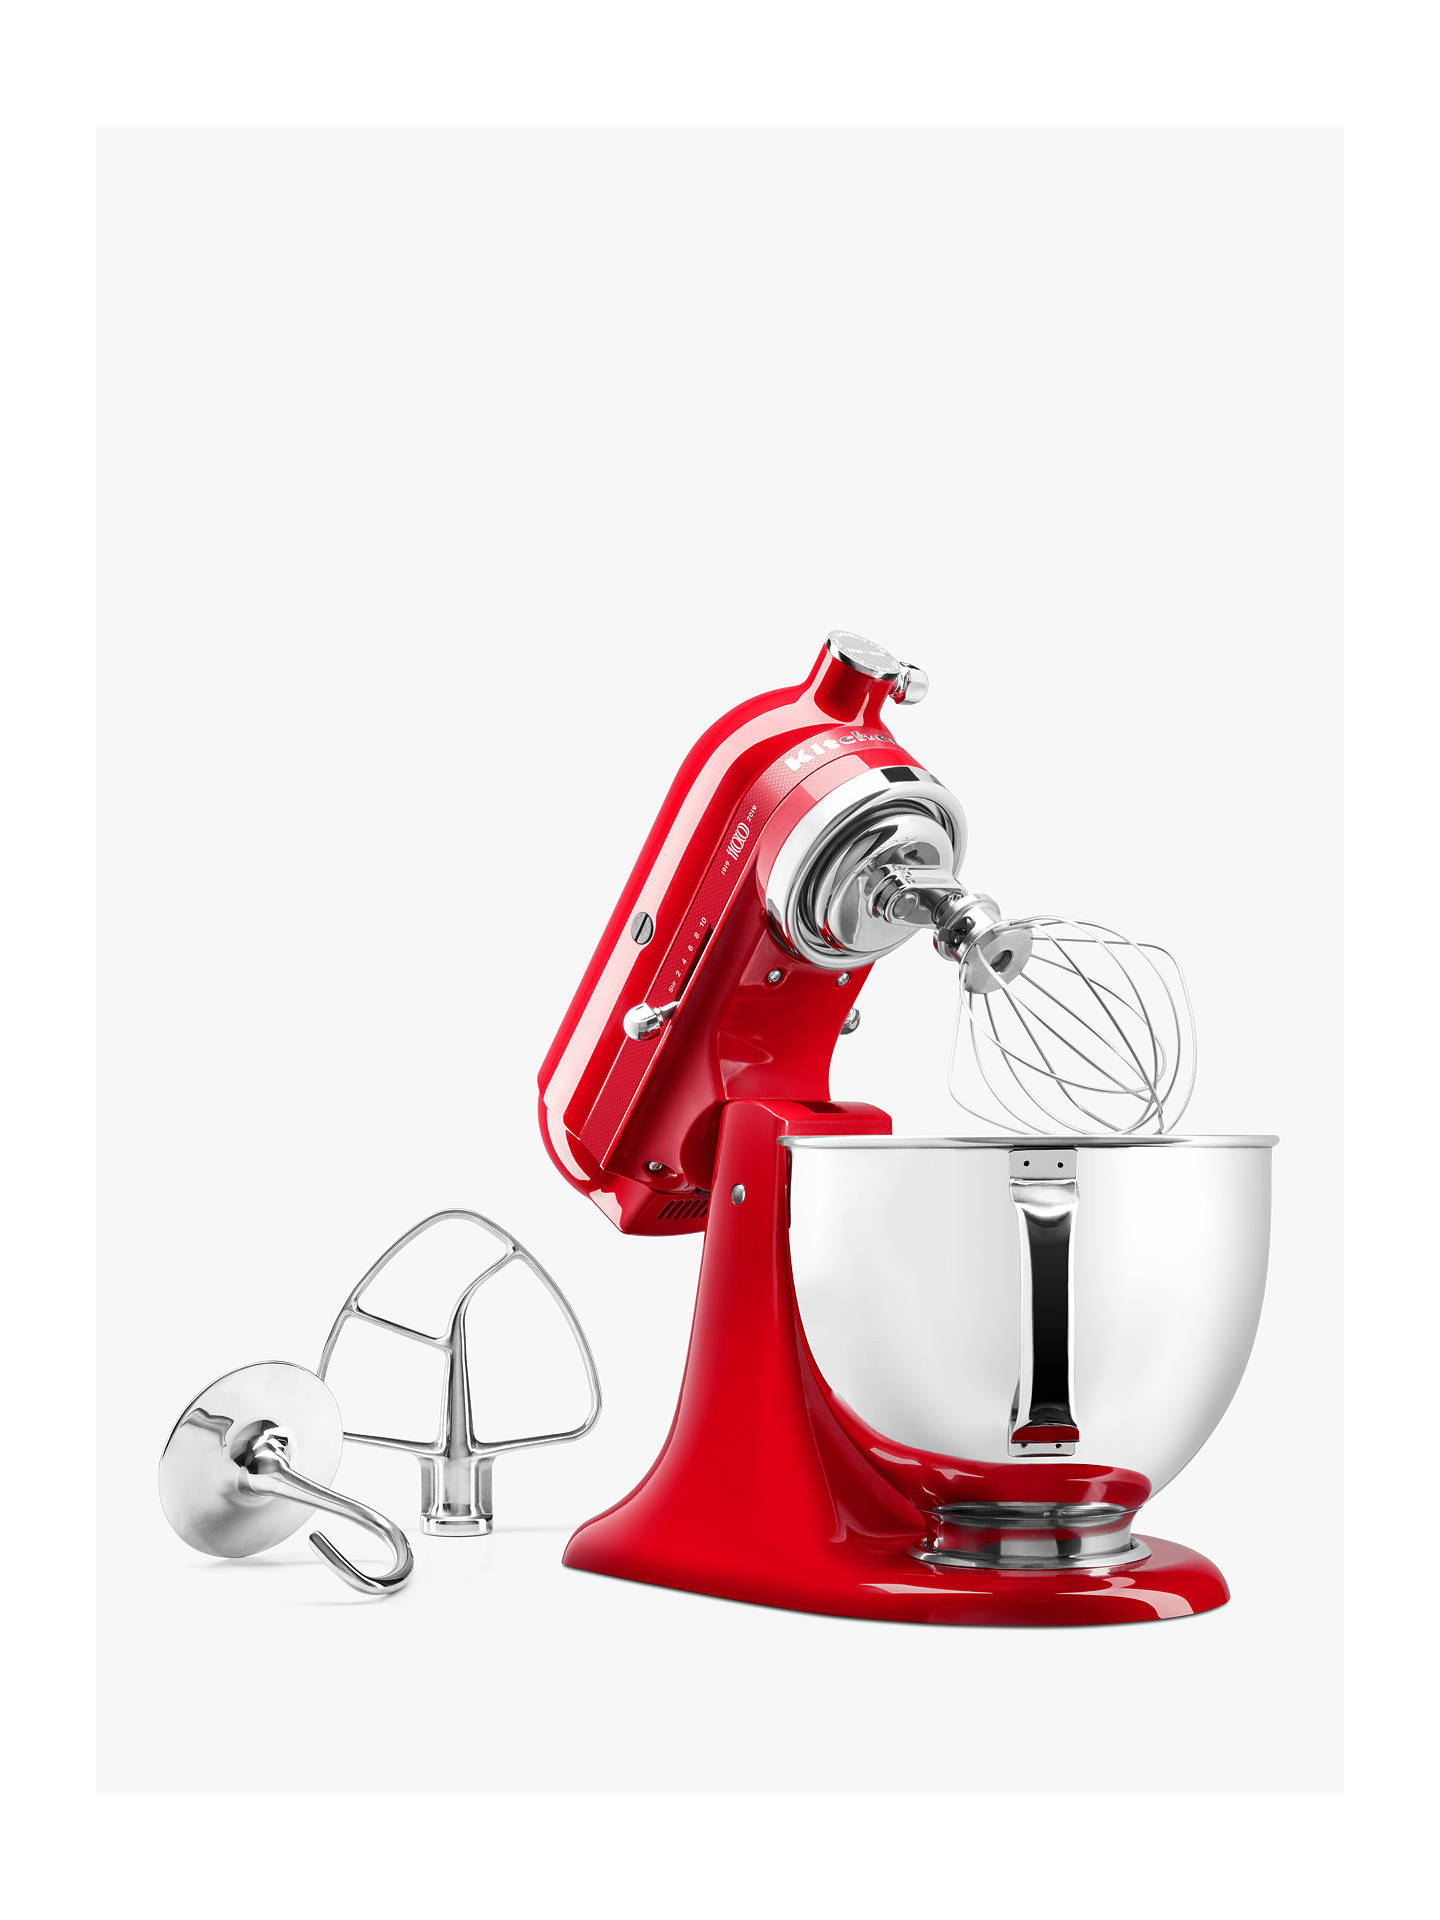 Buy KitchenAid Queen of Hearts 5KSM180HBSD 4.8L Stand Mixer, Red Online at johnlewis.com